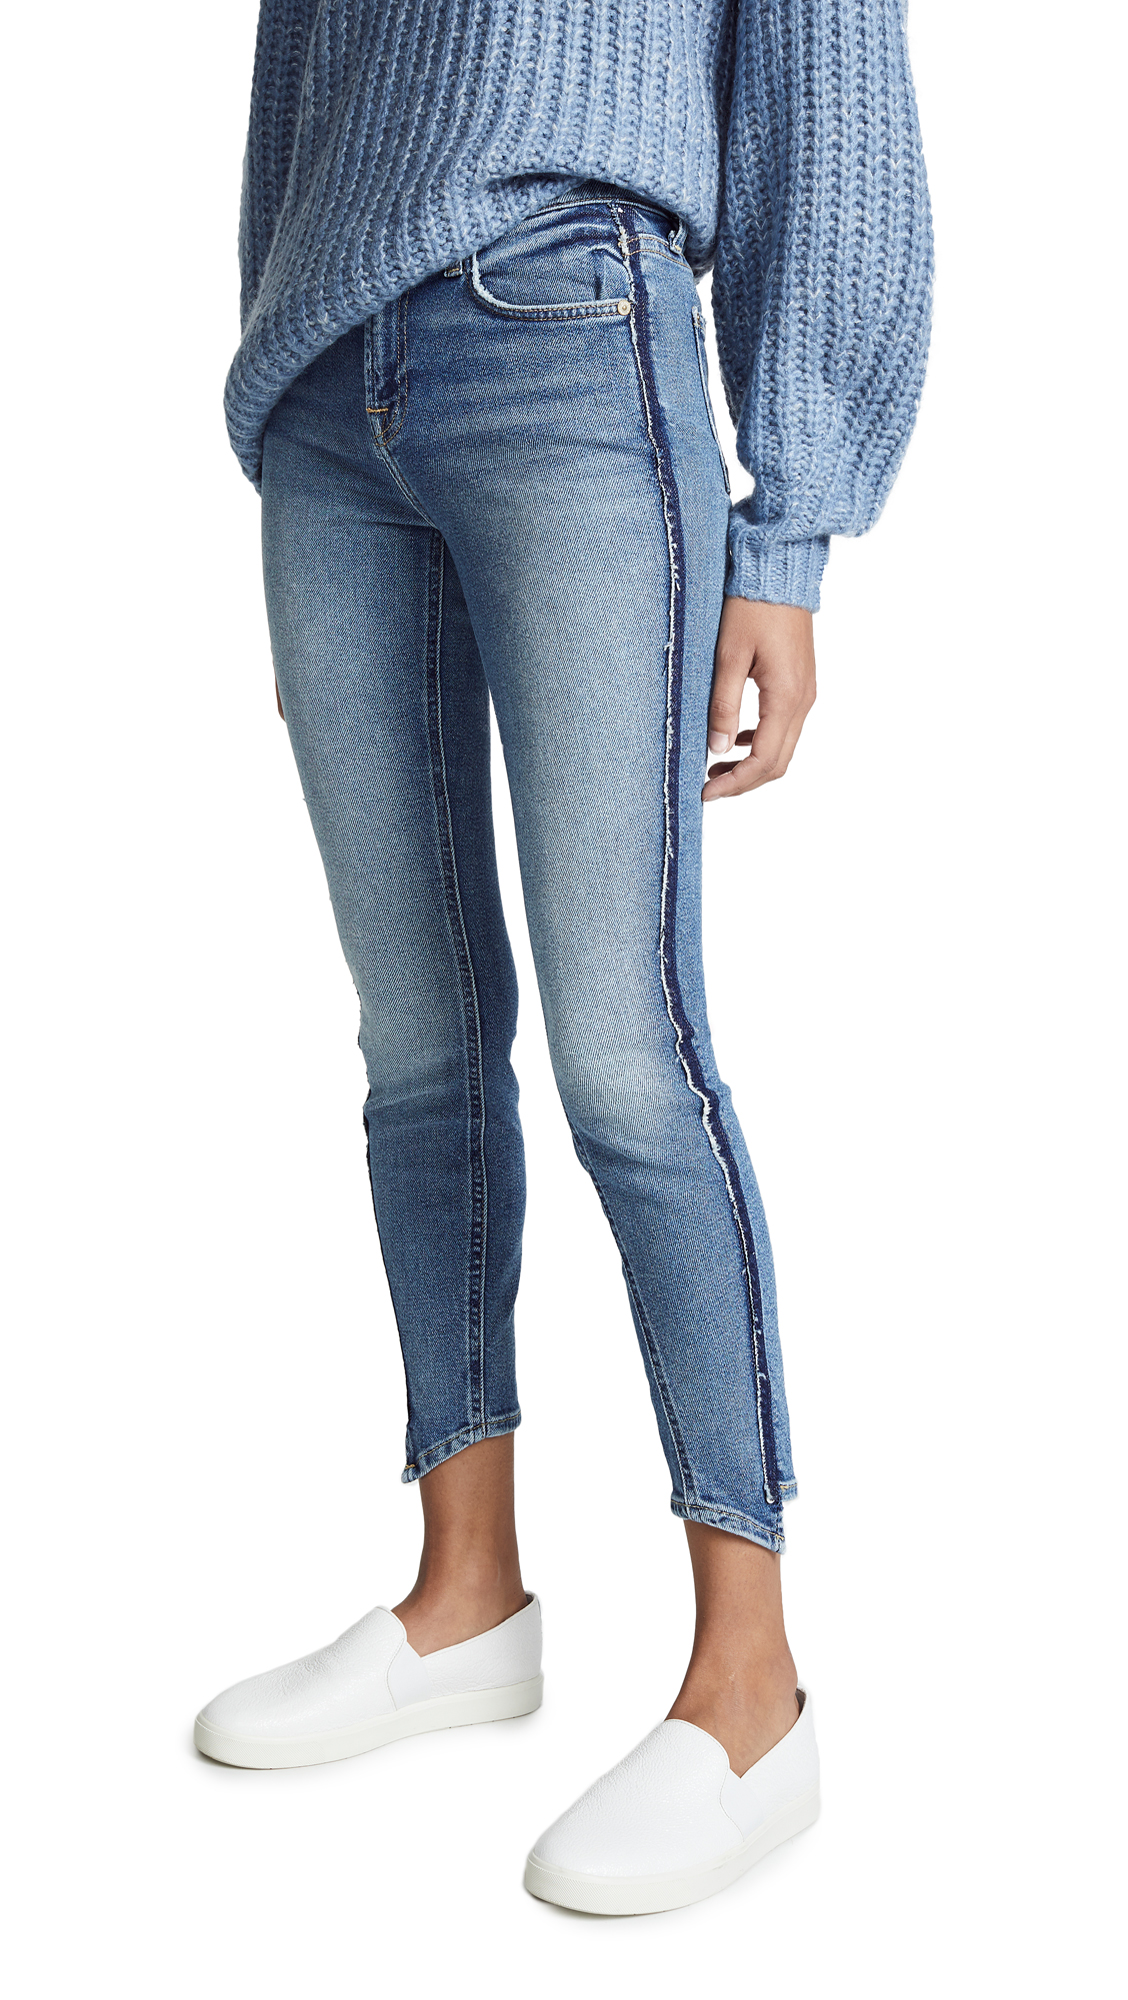 7 For All Mankind Luxe Vintage Ankle Skinny Jeans with Angled Seams - Luxe Vintage Muse